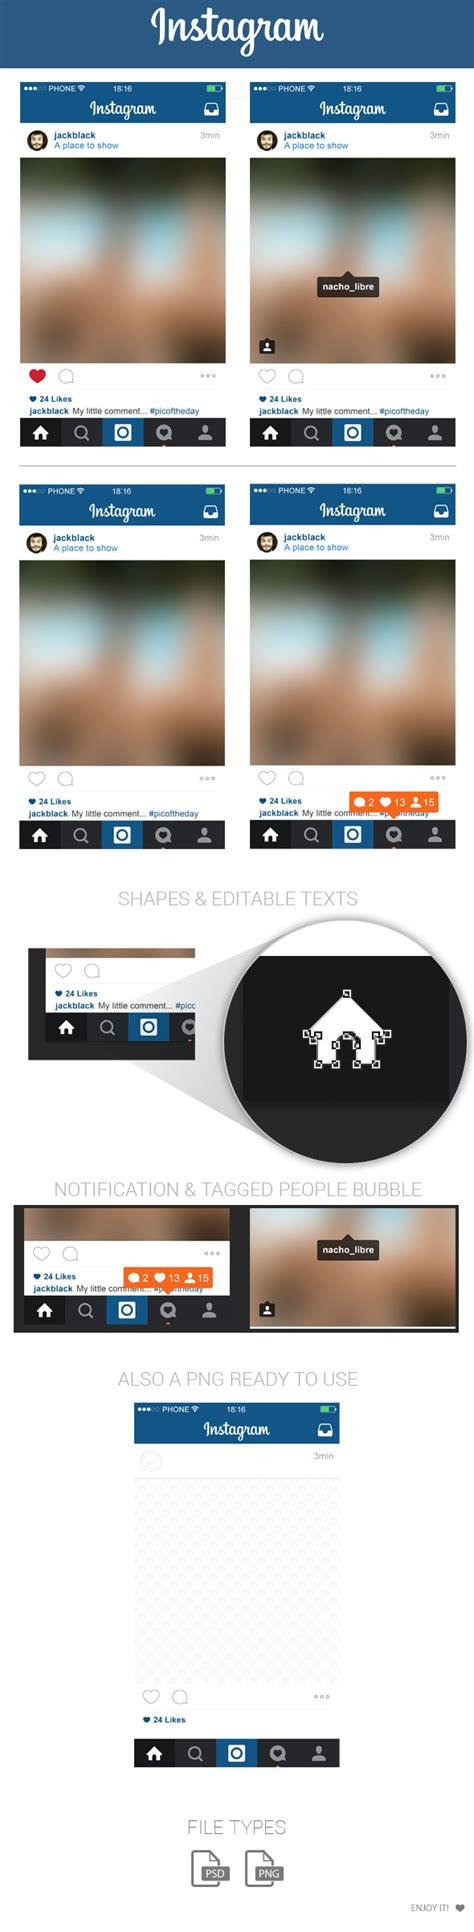 layout instagram psd free instagram home layout ui psd may 2015 by marinad on